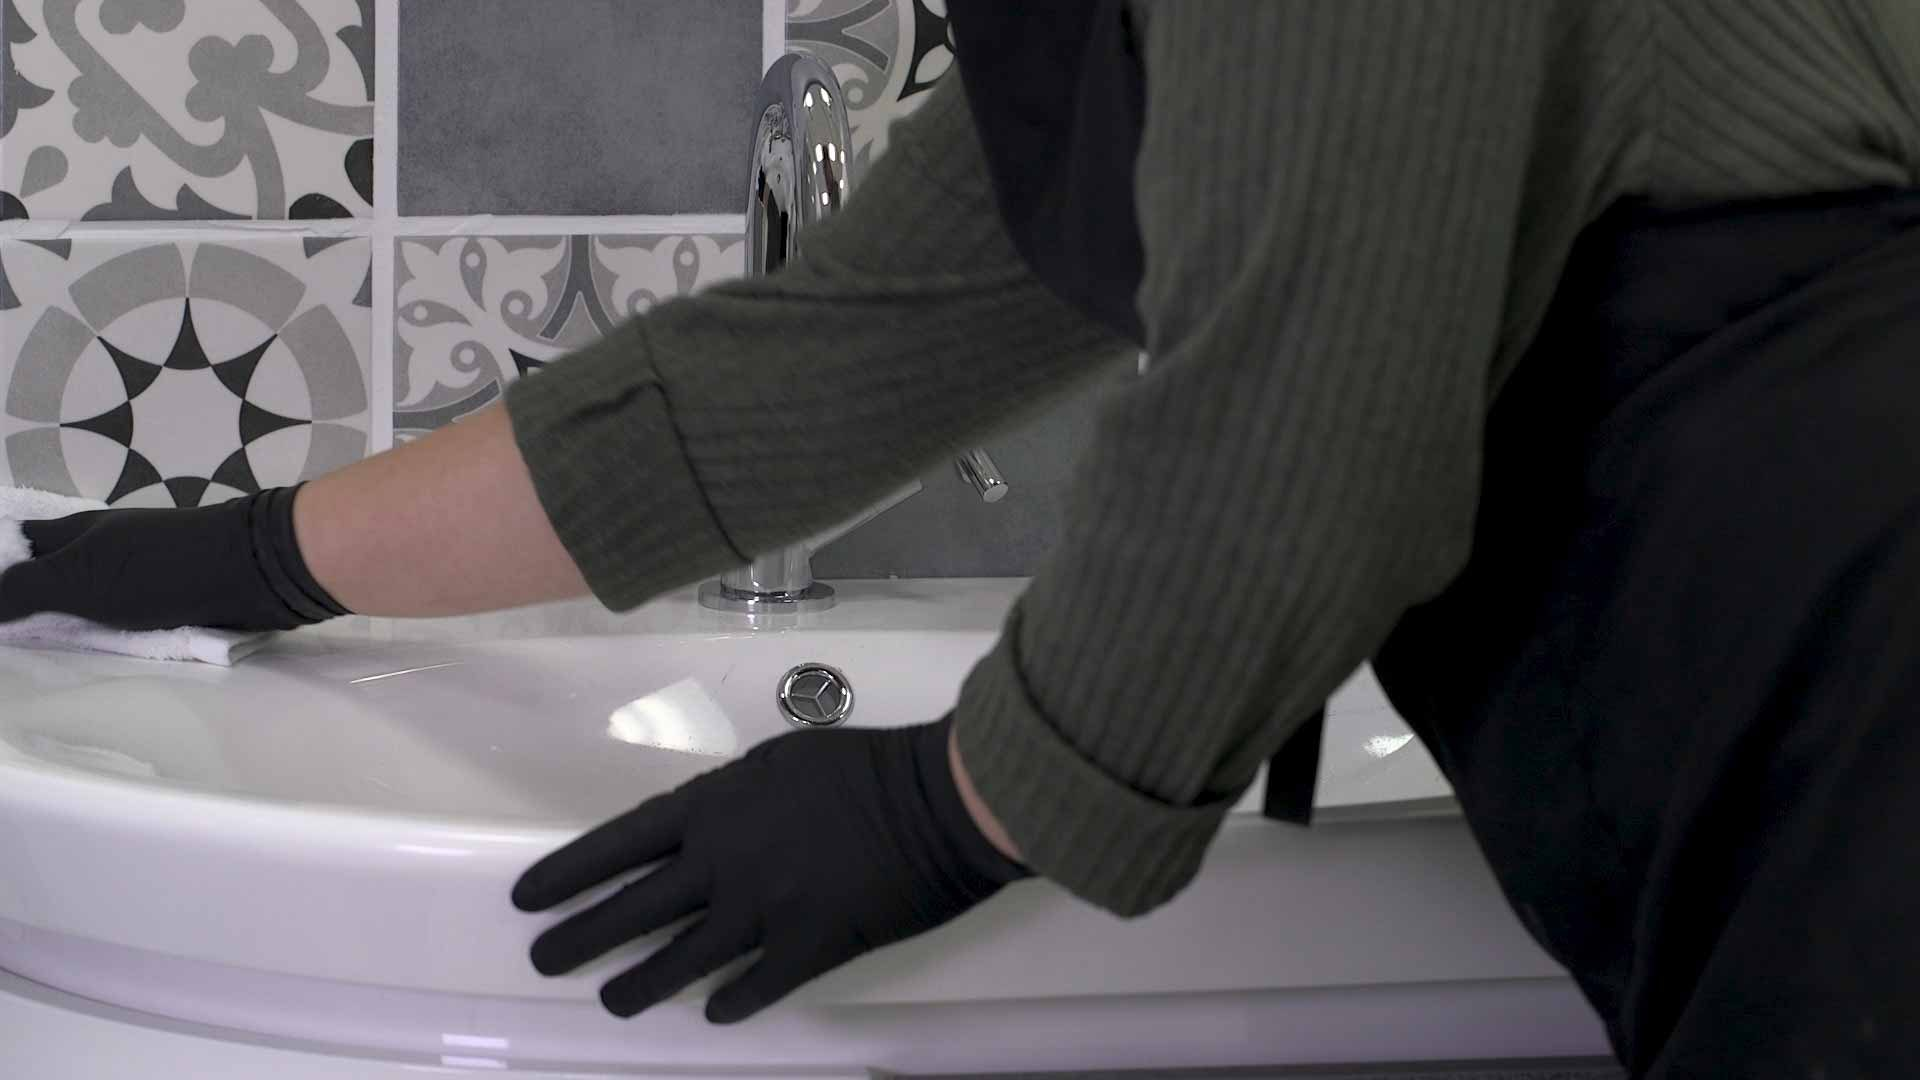 Cleaning with a reusable bathroom wipe